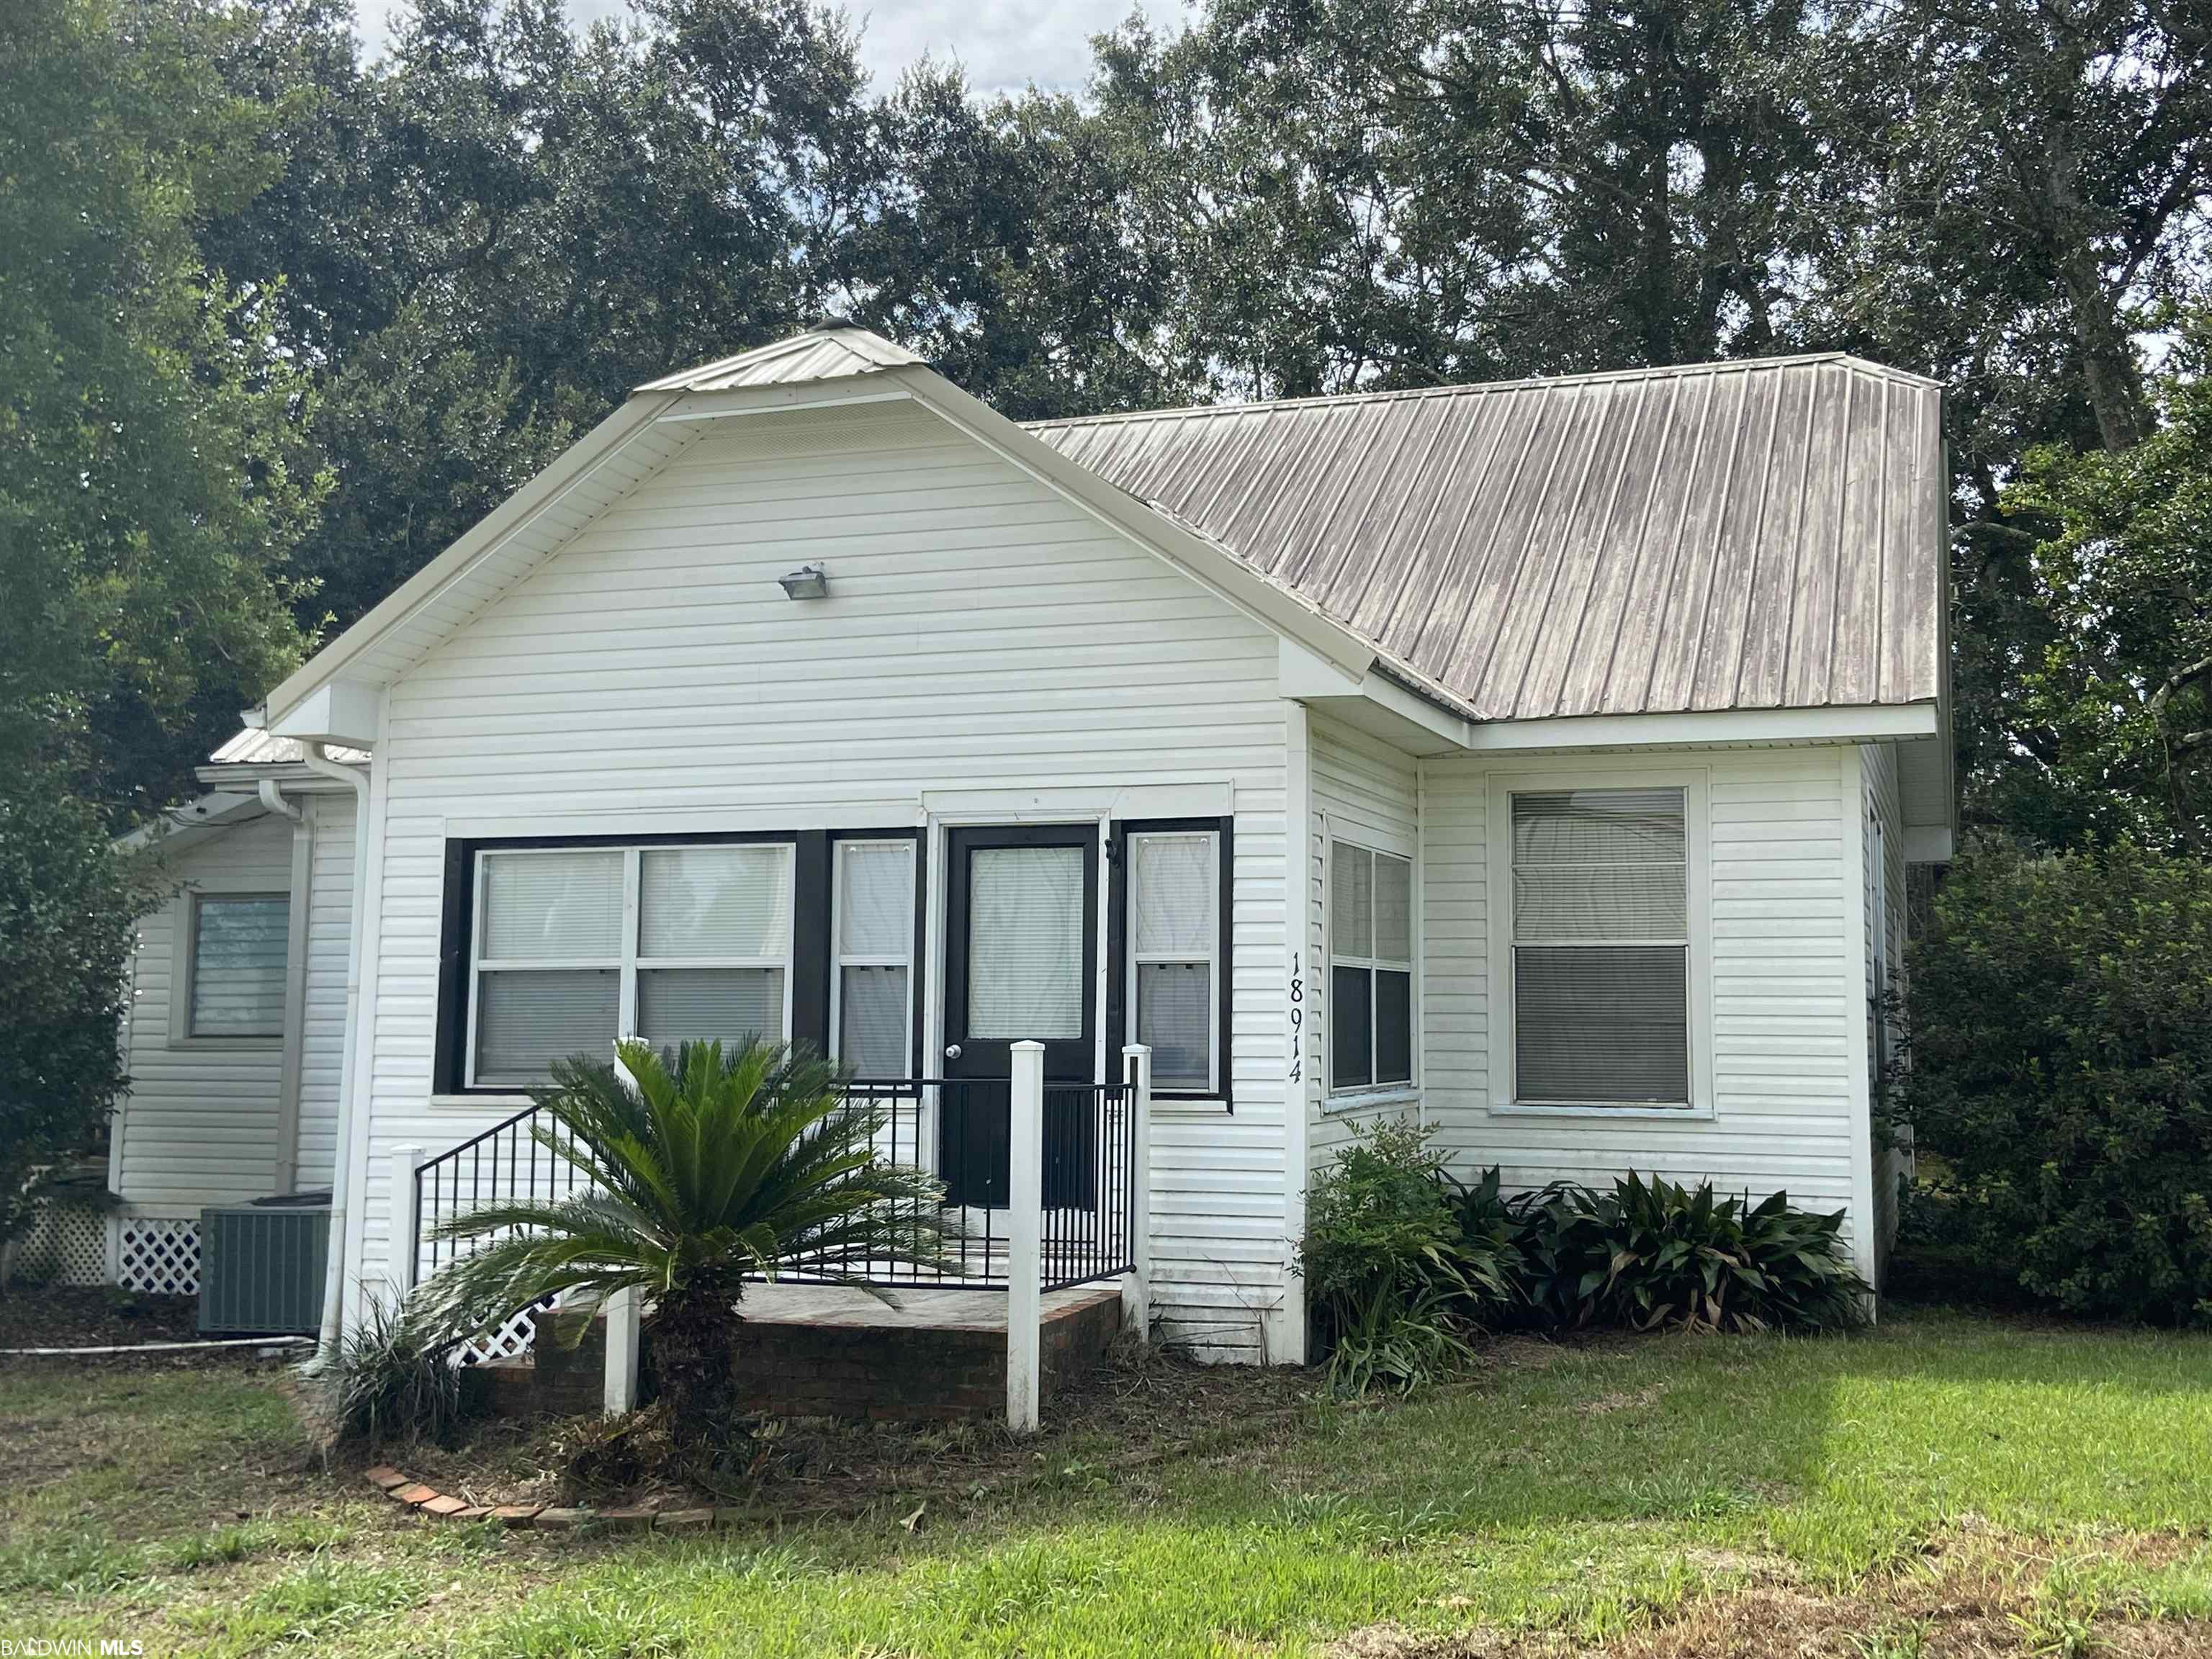 Buy the cutest cottage in Baldwin! This one is loaded with charm and ready for a new owner. Located on a quiet street central to Robertsdale Elementary and Robertsdale High School, this one is  completely refreshed on the inside--new cabinetry and countertops, new vinyl plank flooring, and fresh paint make this one a must see. The property has a spacious yard with storage shed and an RV hookup! Home has been replumbed and rewired prior to current owner. Information is deemed reliable and should be verified by buyer or buyer's agent. Seller is licensed real estate agent.